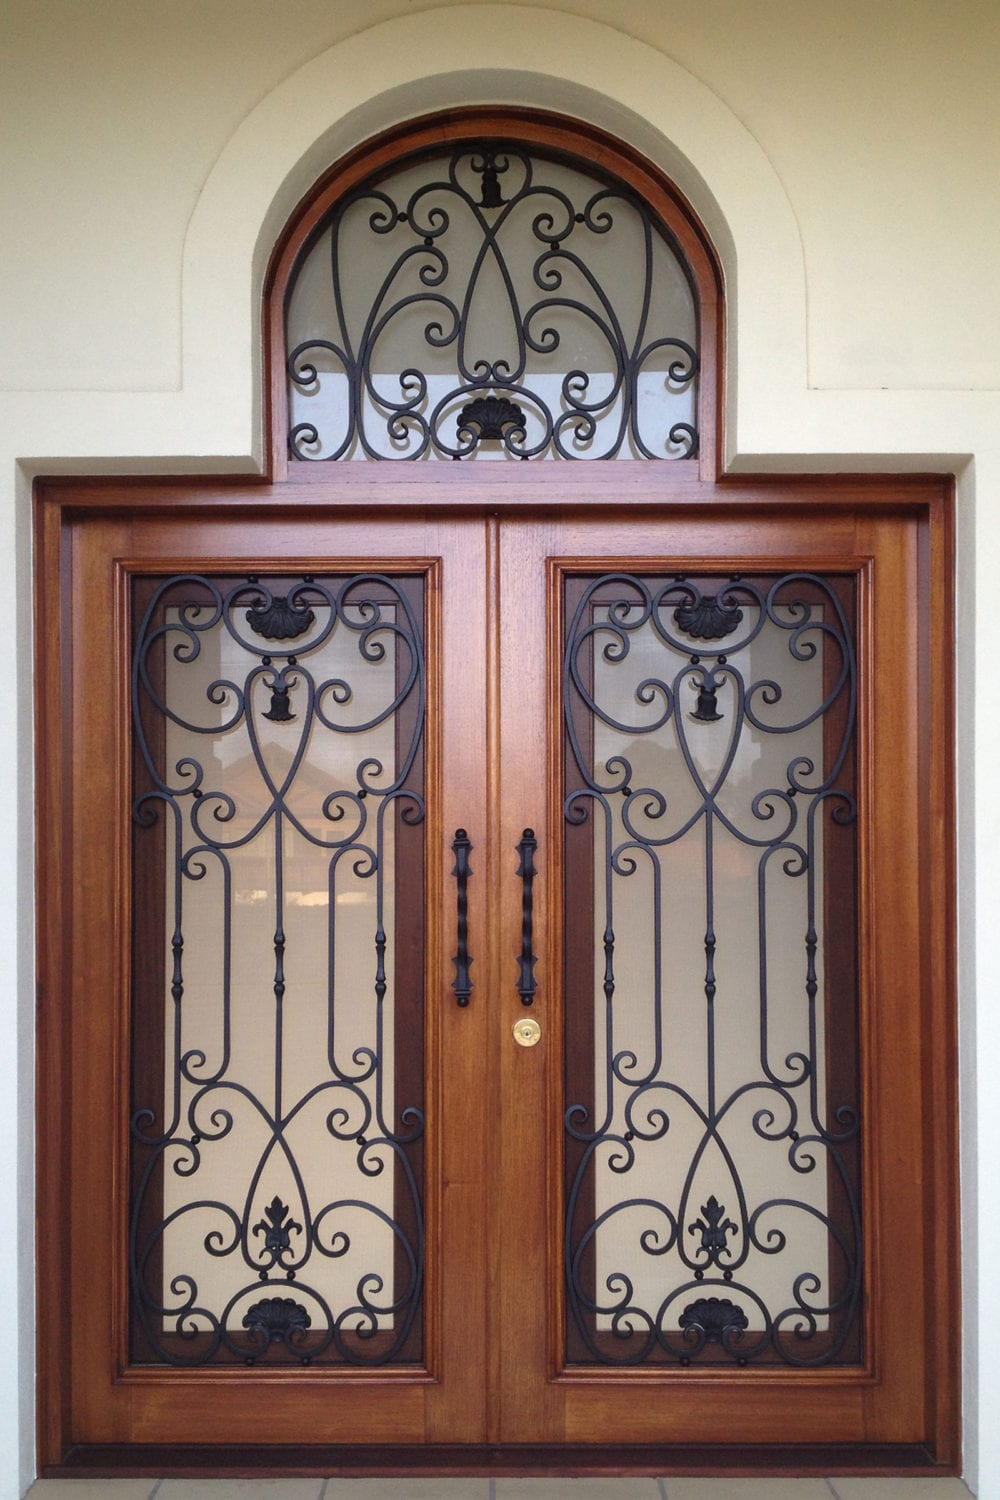 Our wrought iron and timber doors add refinement and timeless elegance to your new or existing home providing a talking point for new visitors. & Aussie Doors \u2013 Wrought Iron \u0026 Timber Designer Doors all over Australia.